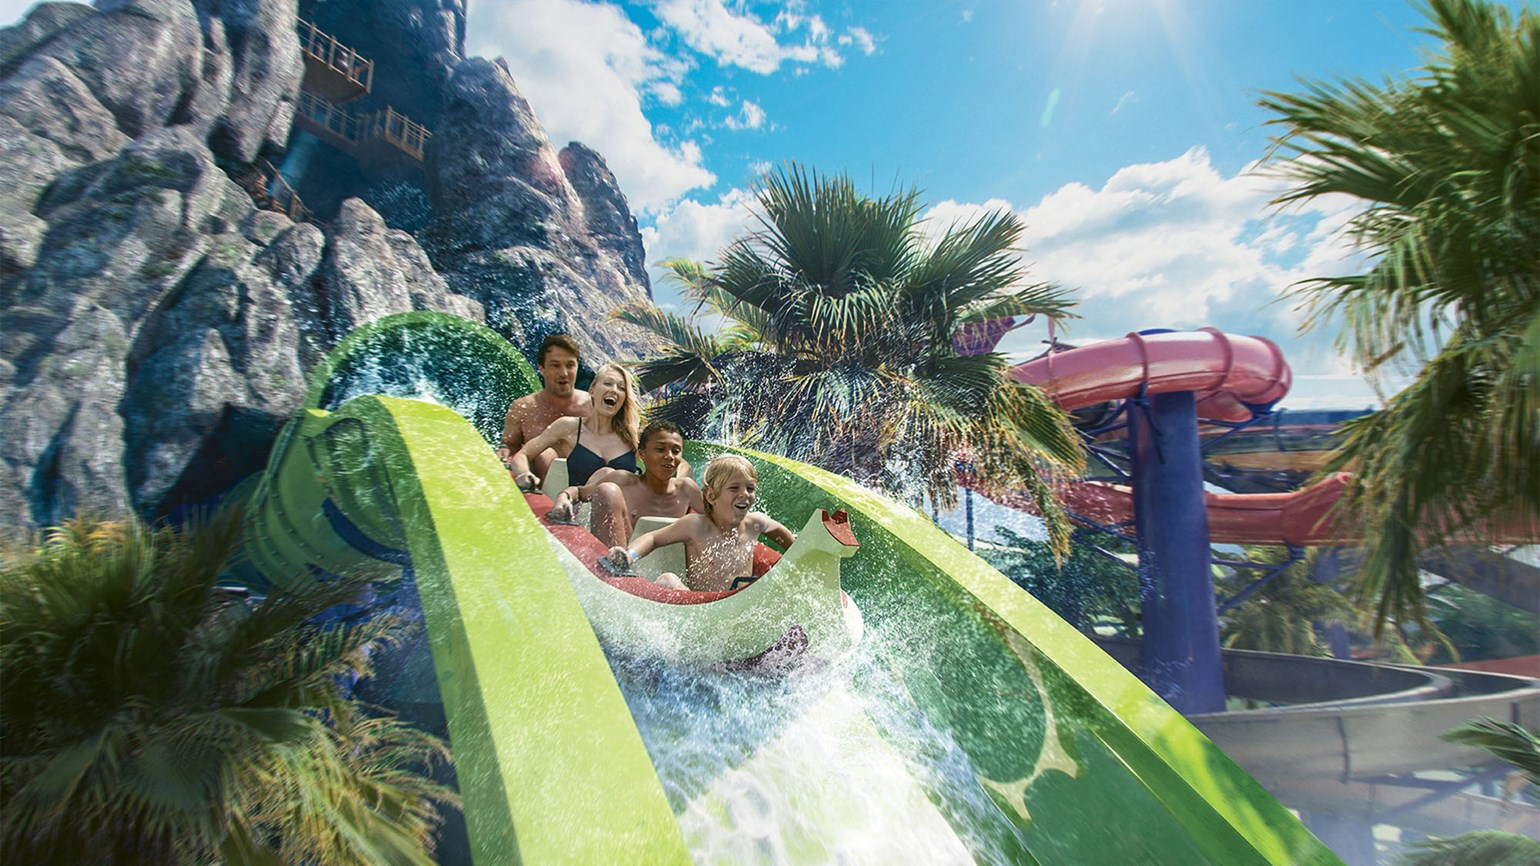 Tickets, packages on sale for Universal Orlando's Volcano Bay waterpark